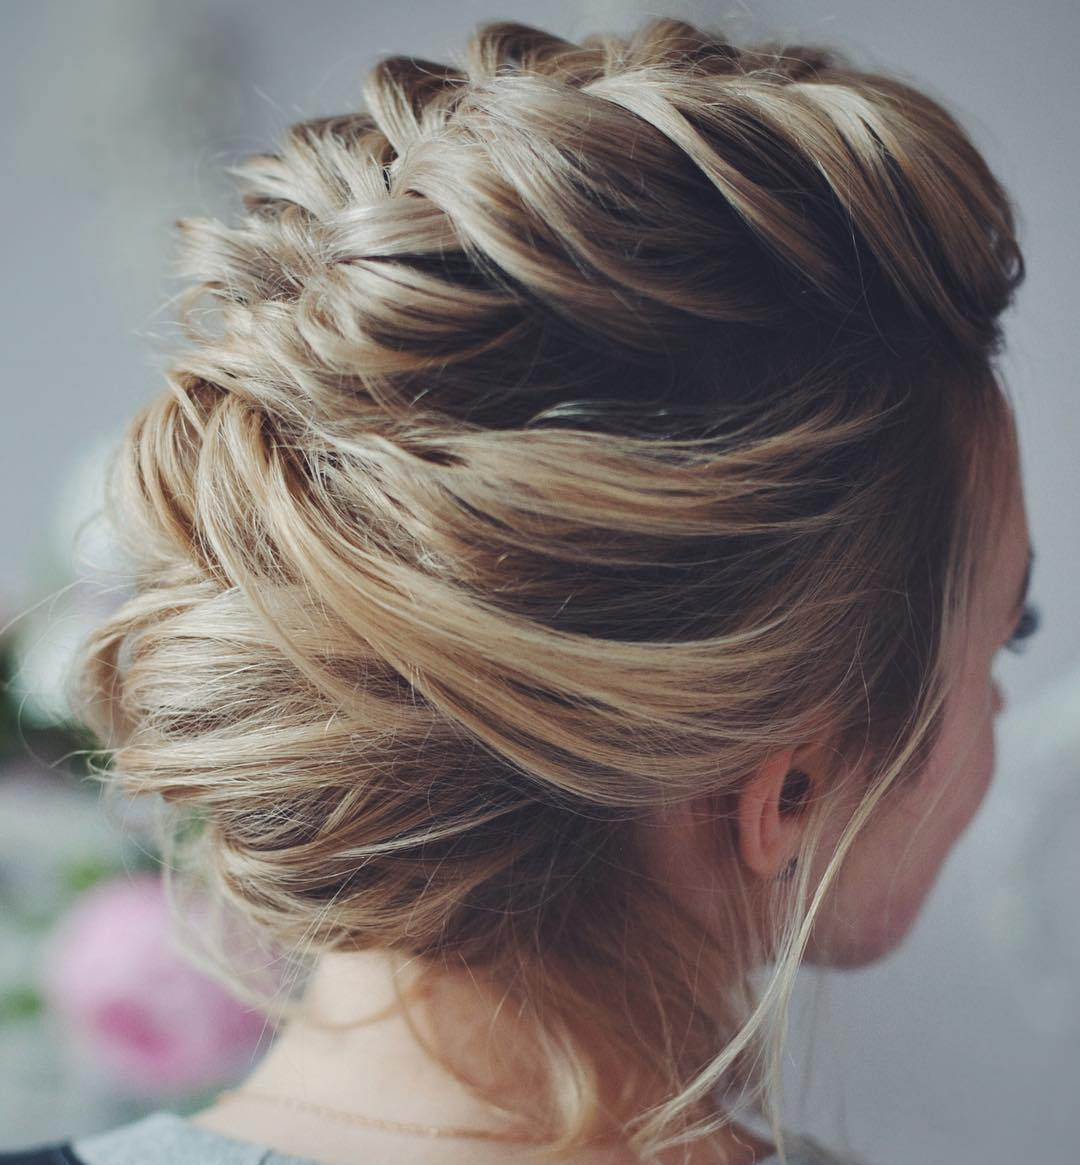 A Prom Hair – Fashion dresses